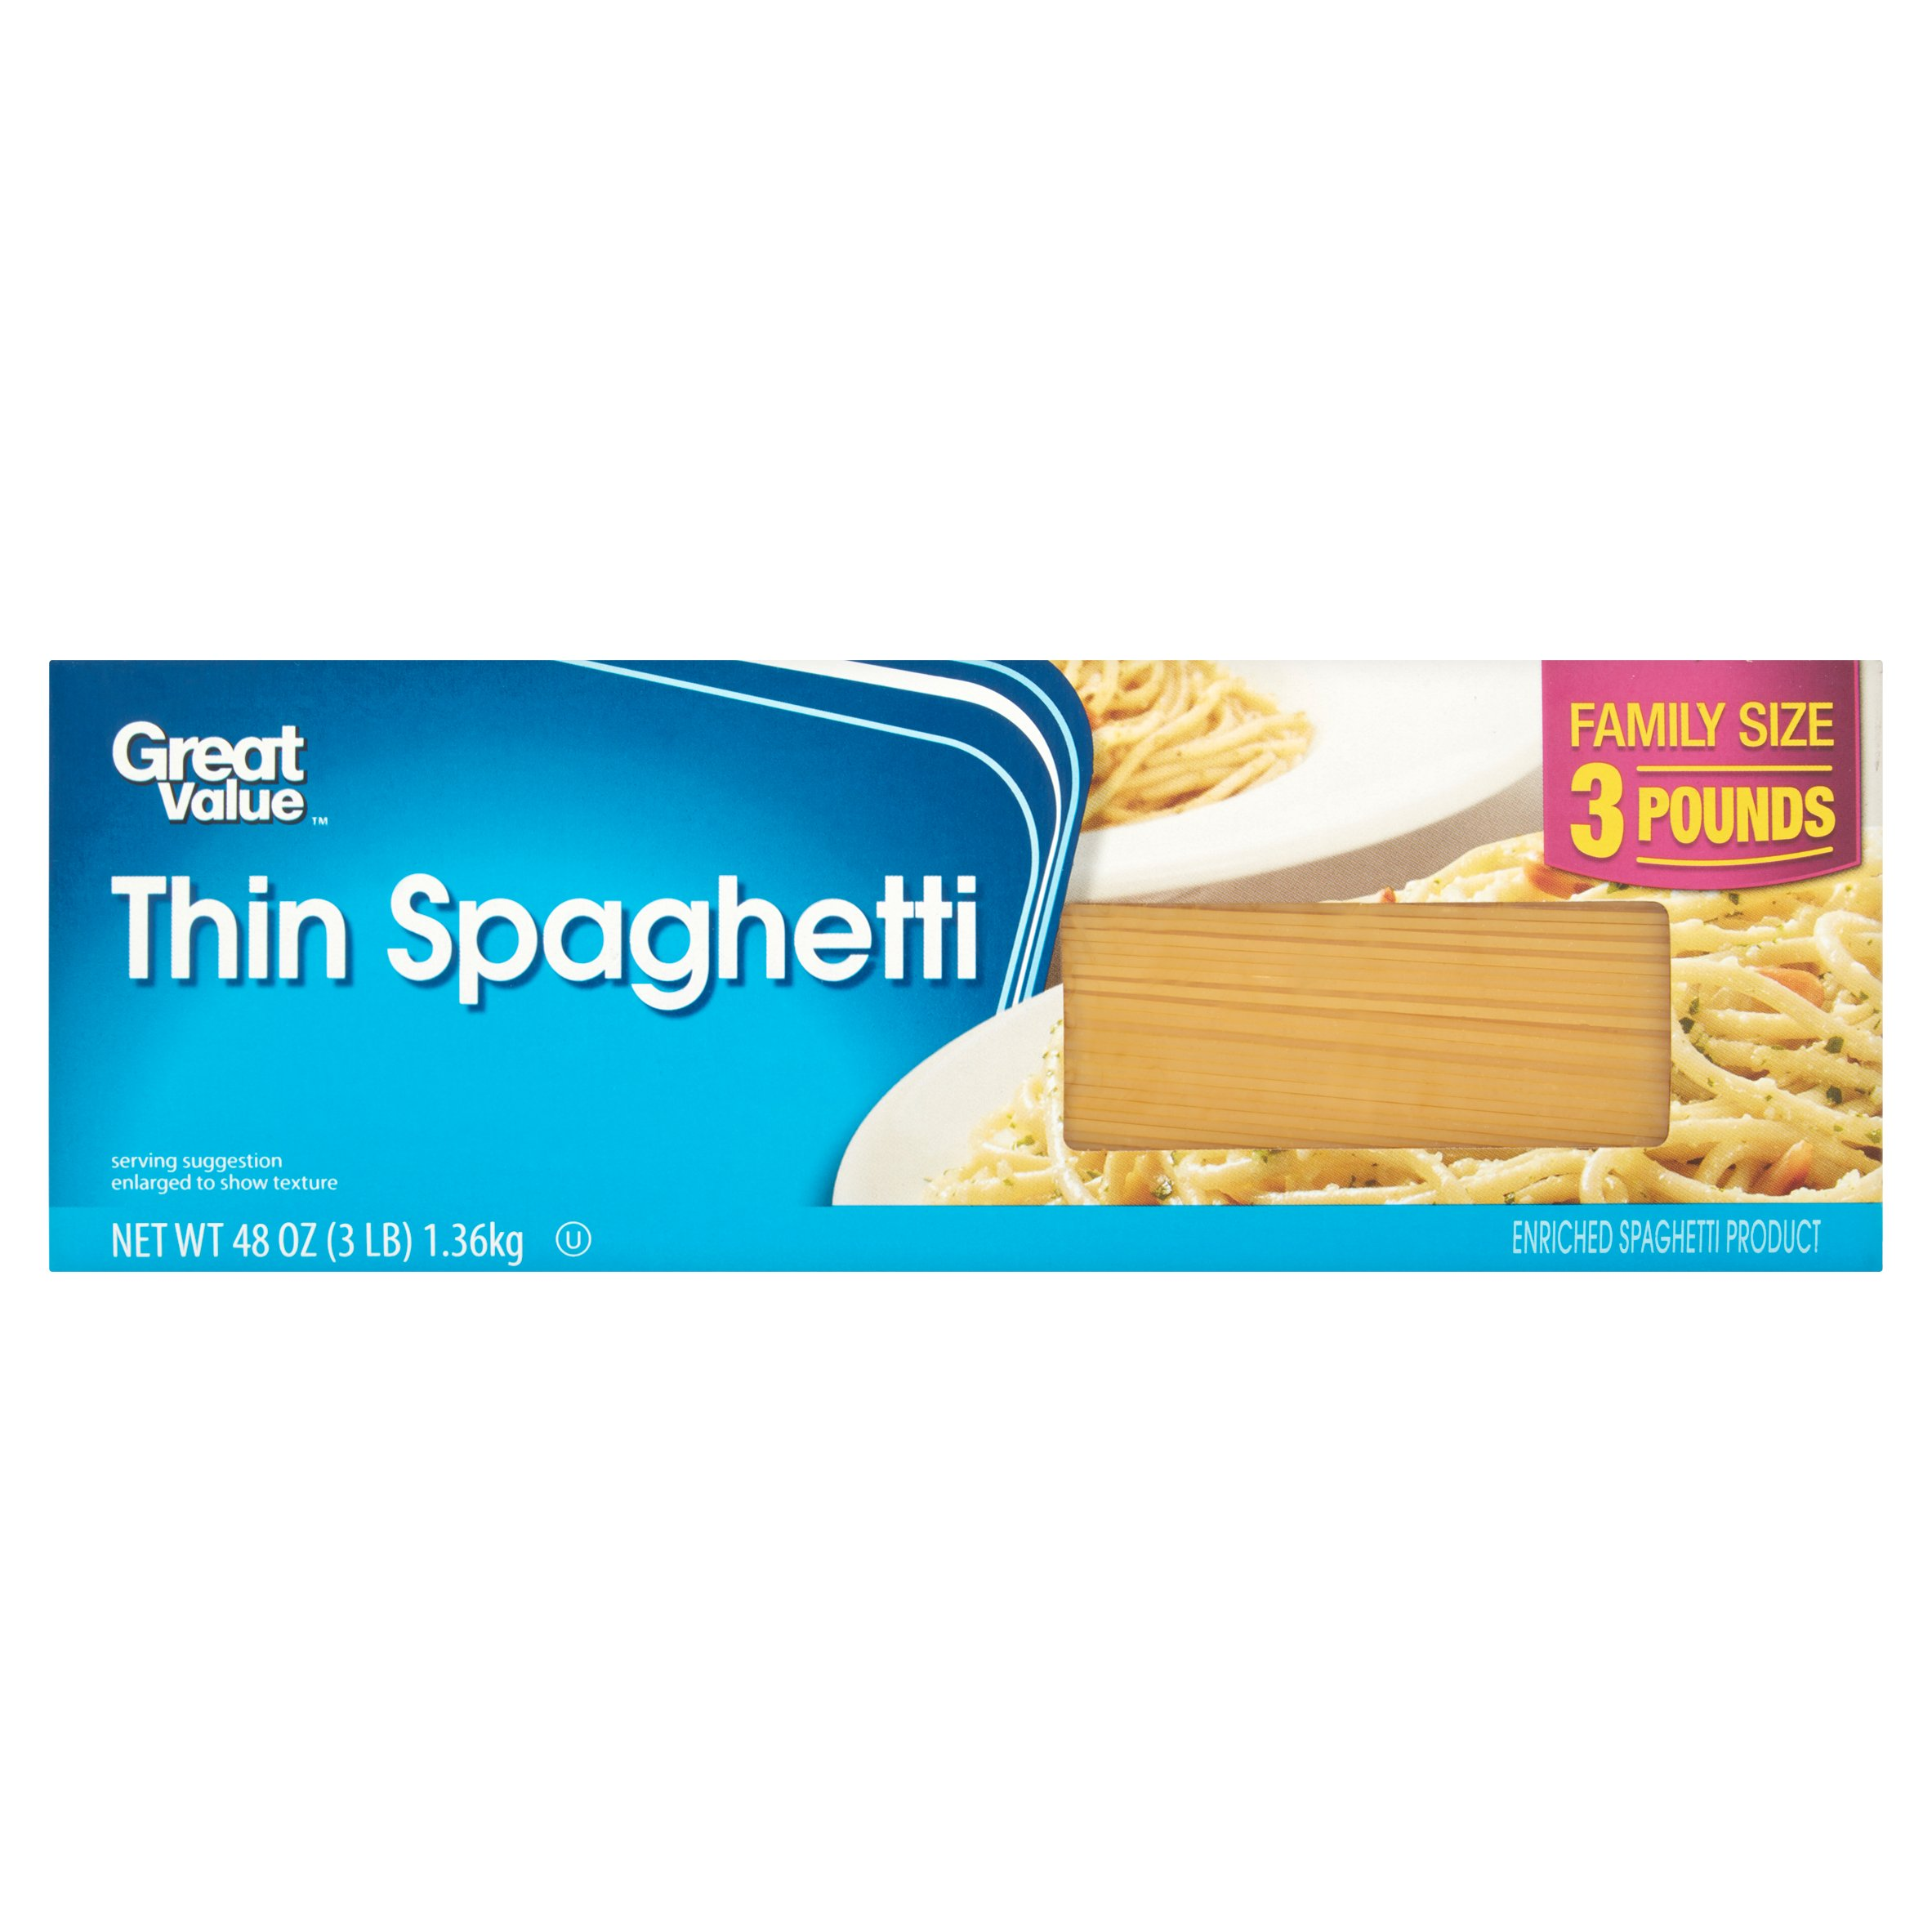 Great Value Thin Spaghetti, Family Size, 3 lb